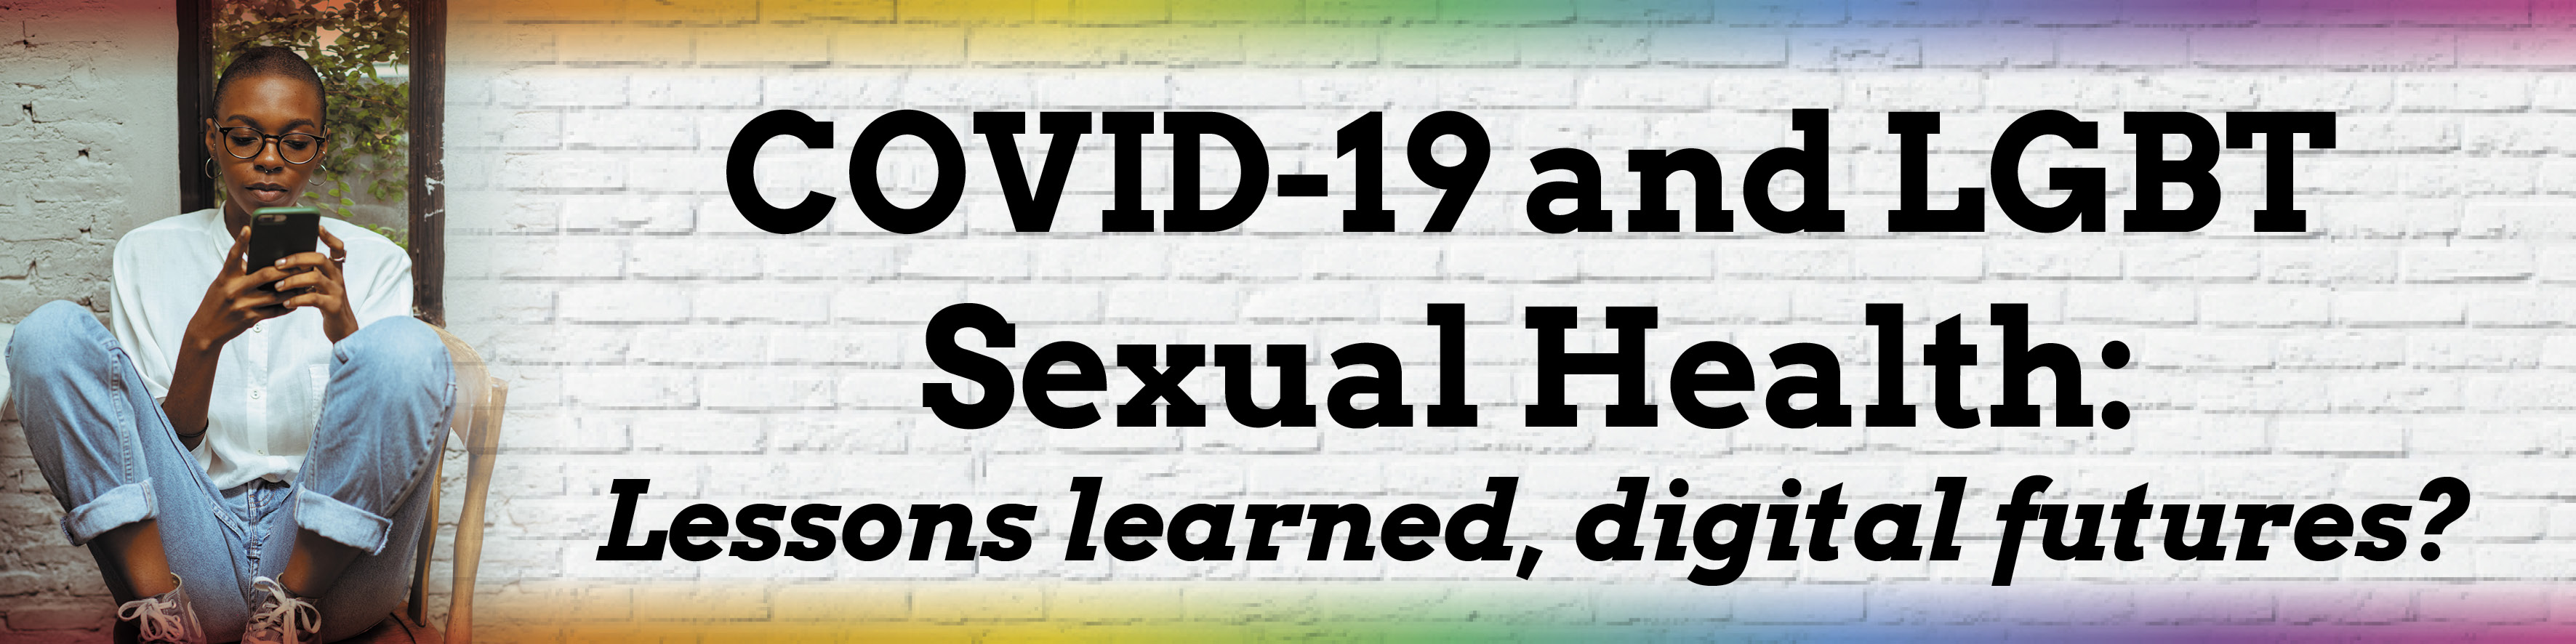 Covid-19 and Sexual Health: Lessons Learned, Digital Futures?